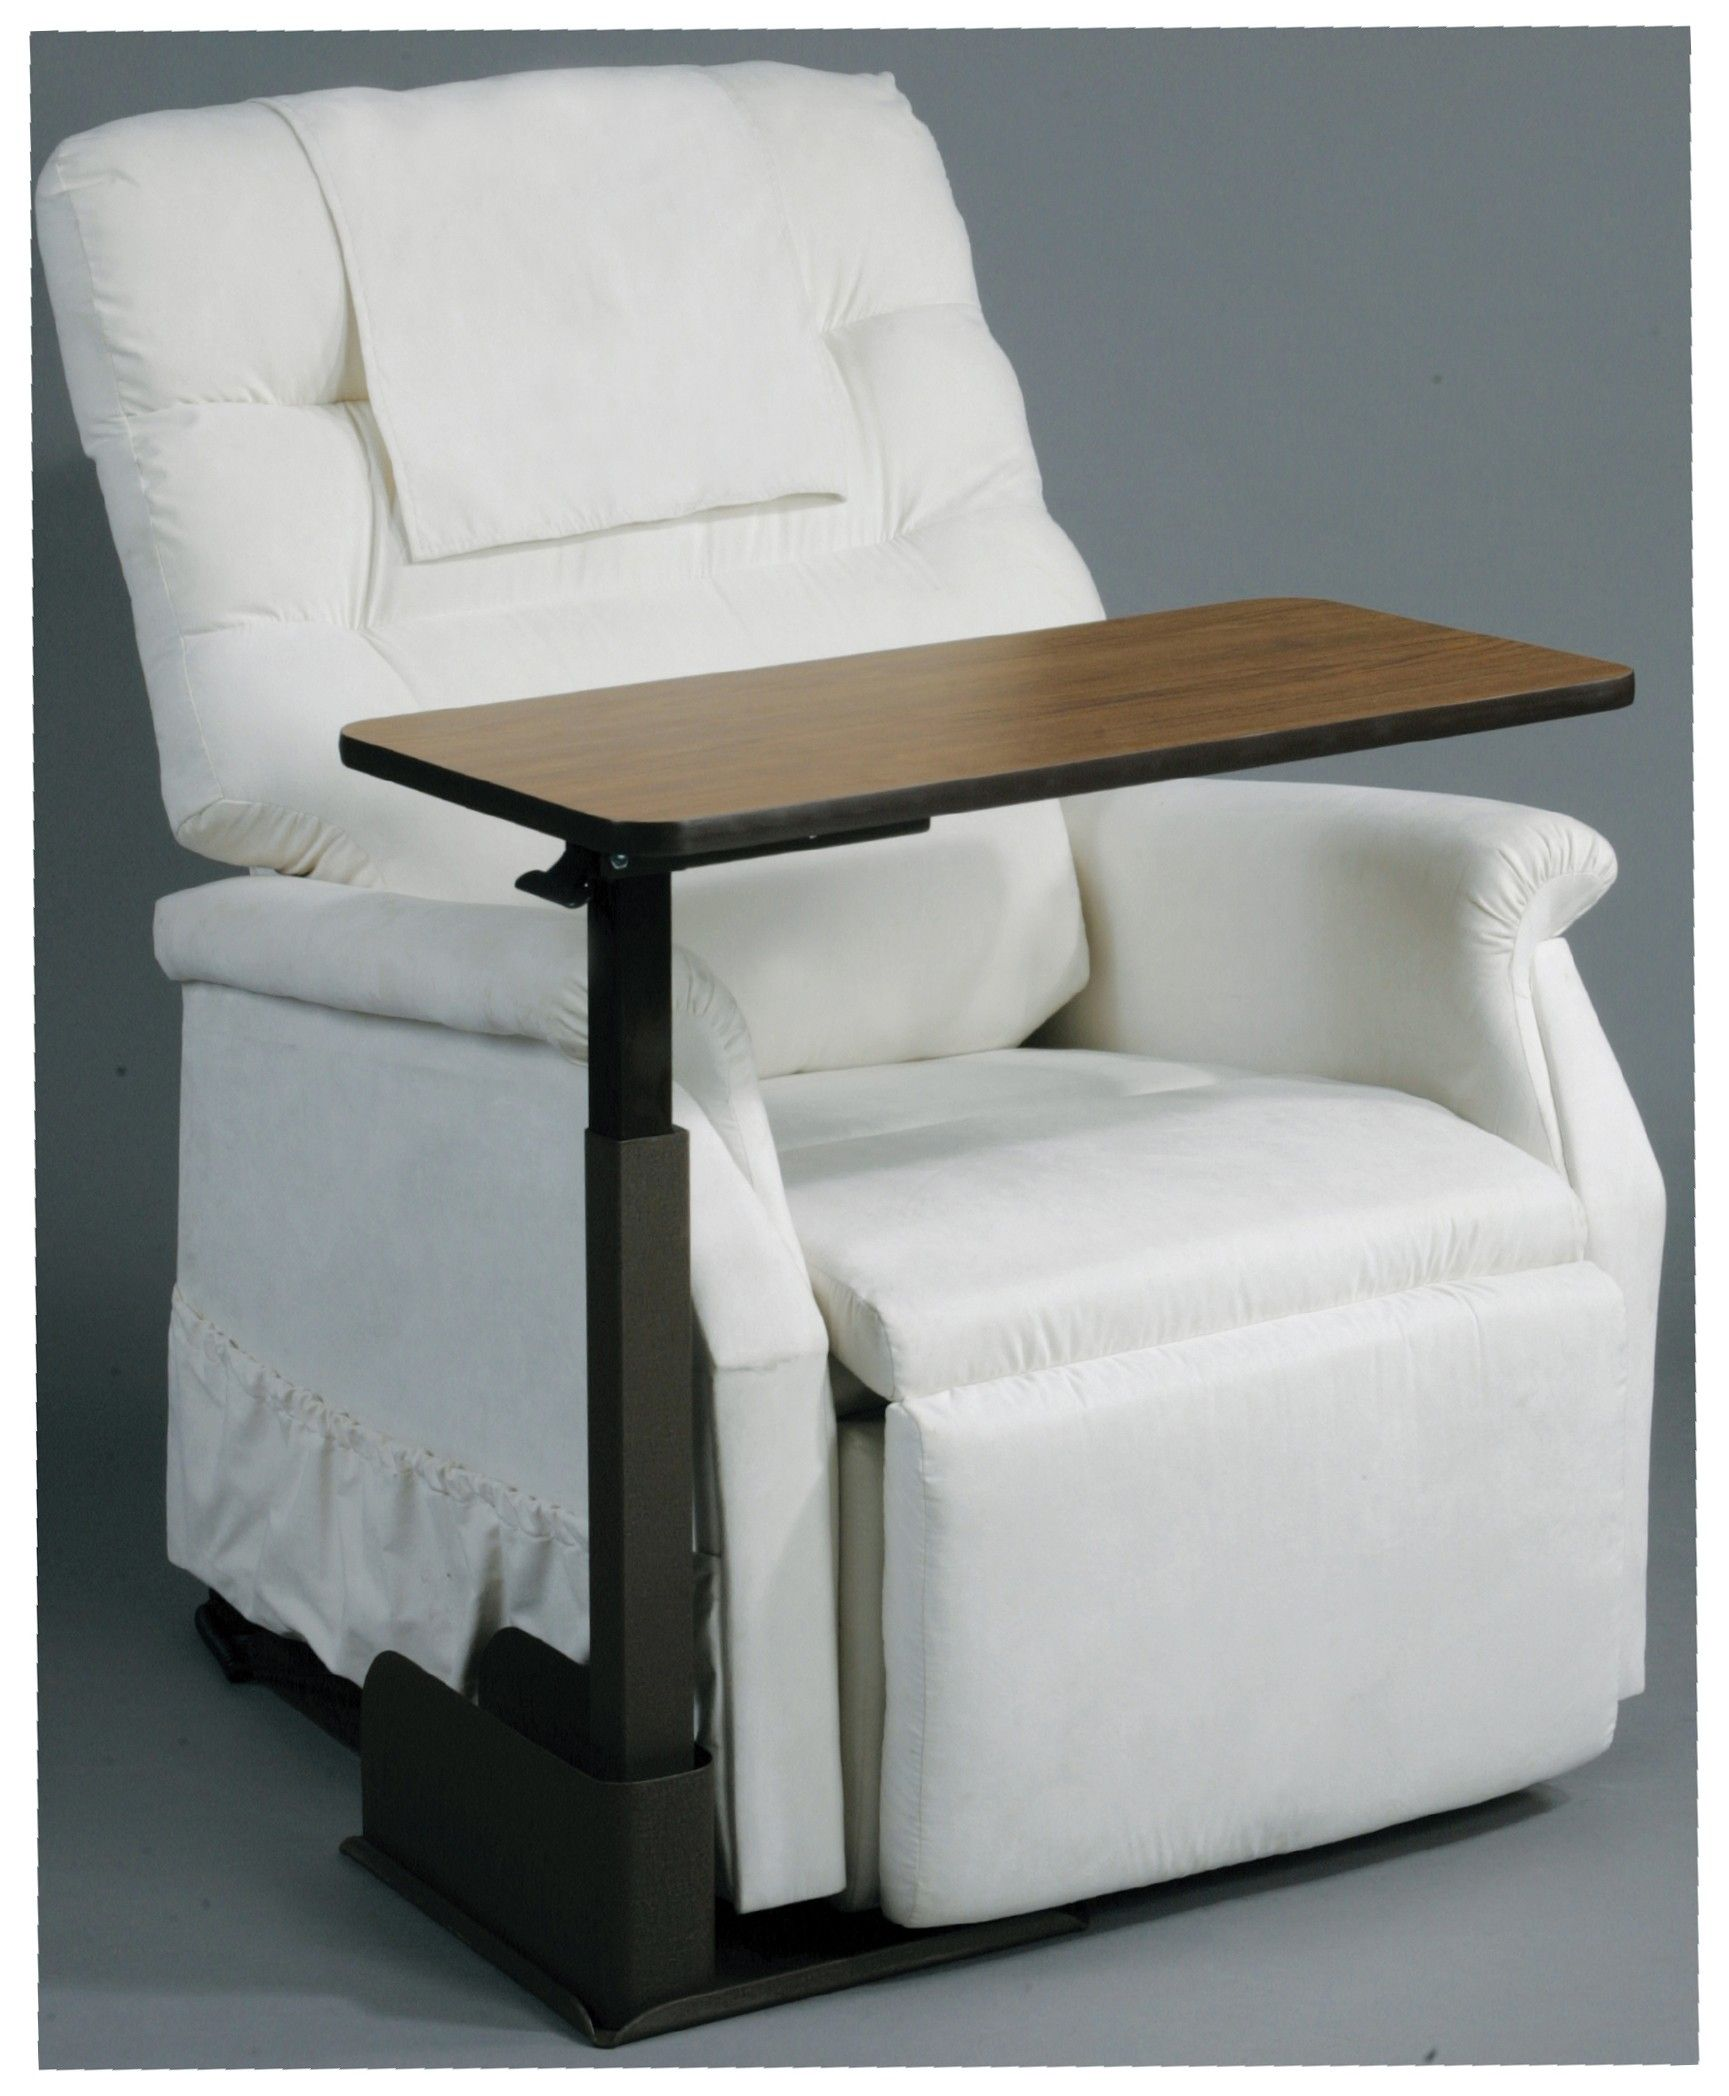 Recliner Table by Drive Medical (With images) Over chair